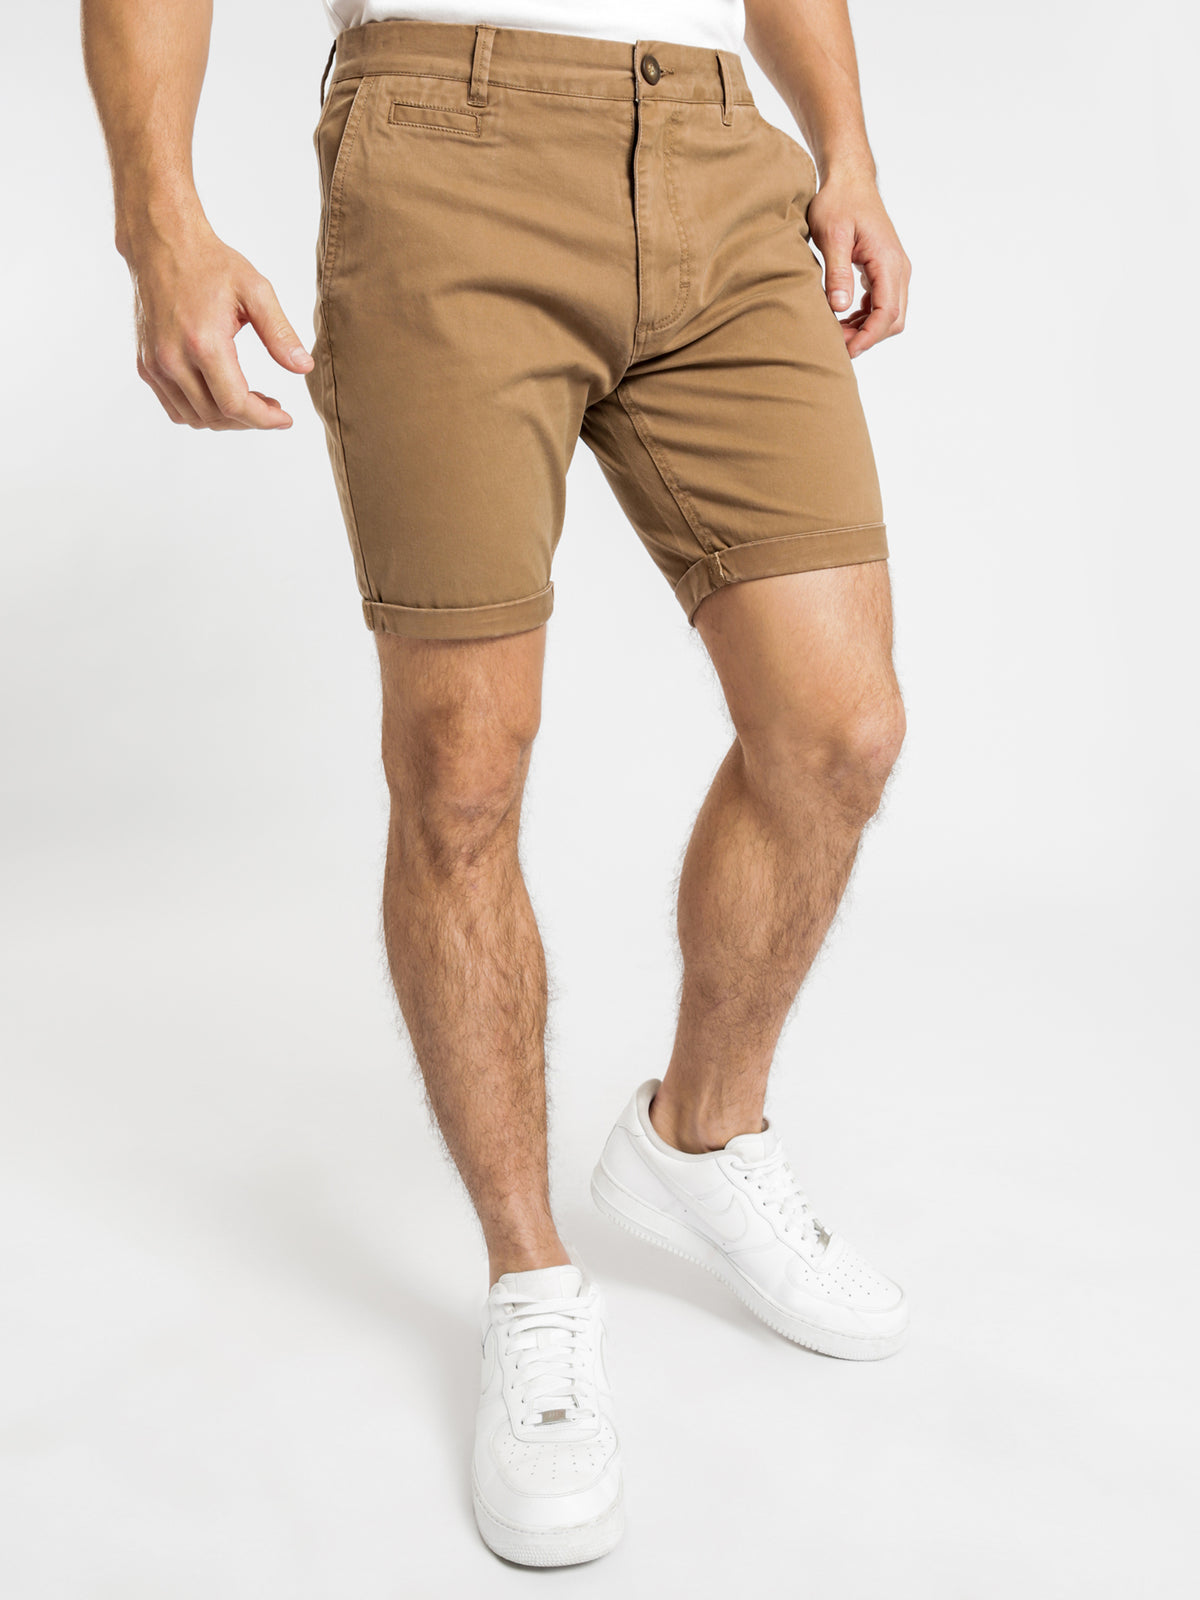 Hunter Chino Shorts in Tan